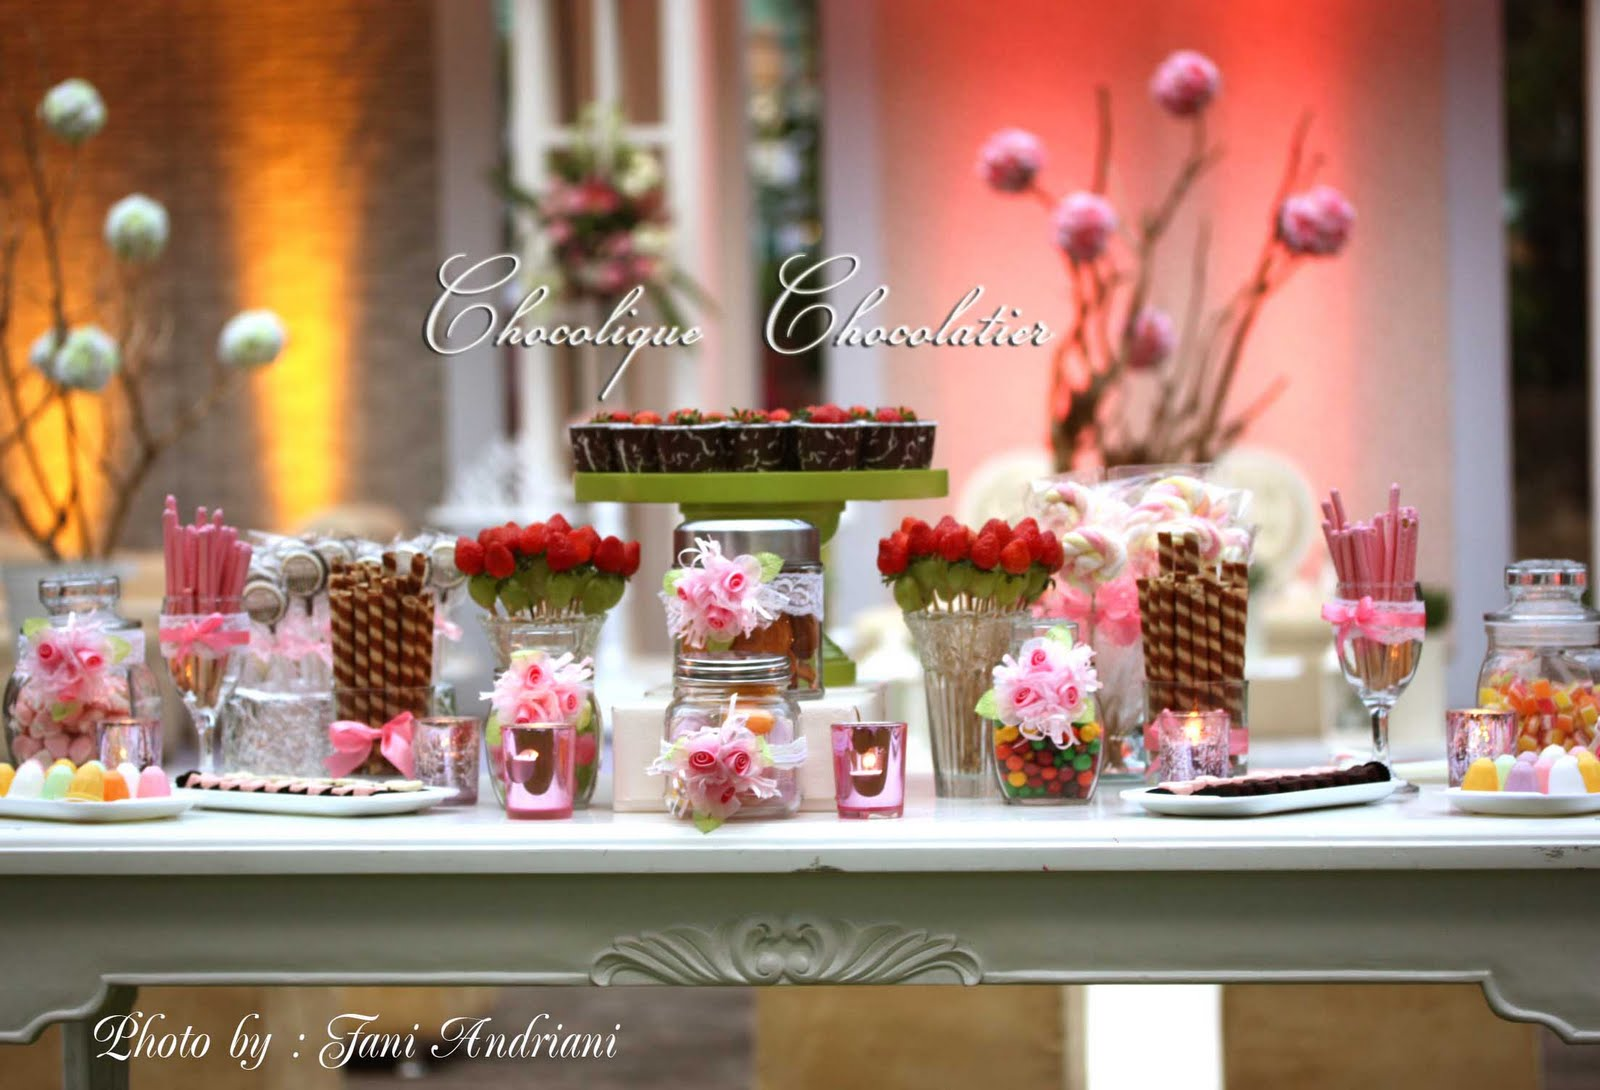 Chocolique chocolatier candy bar for hans uvick 39 s for Candy bar for weddings receptions